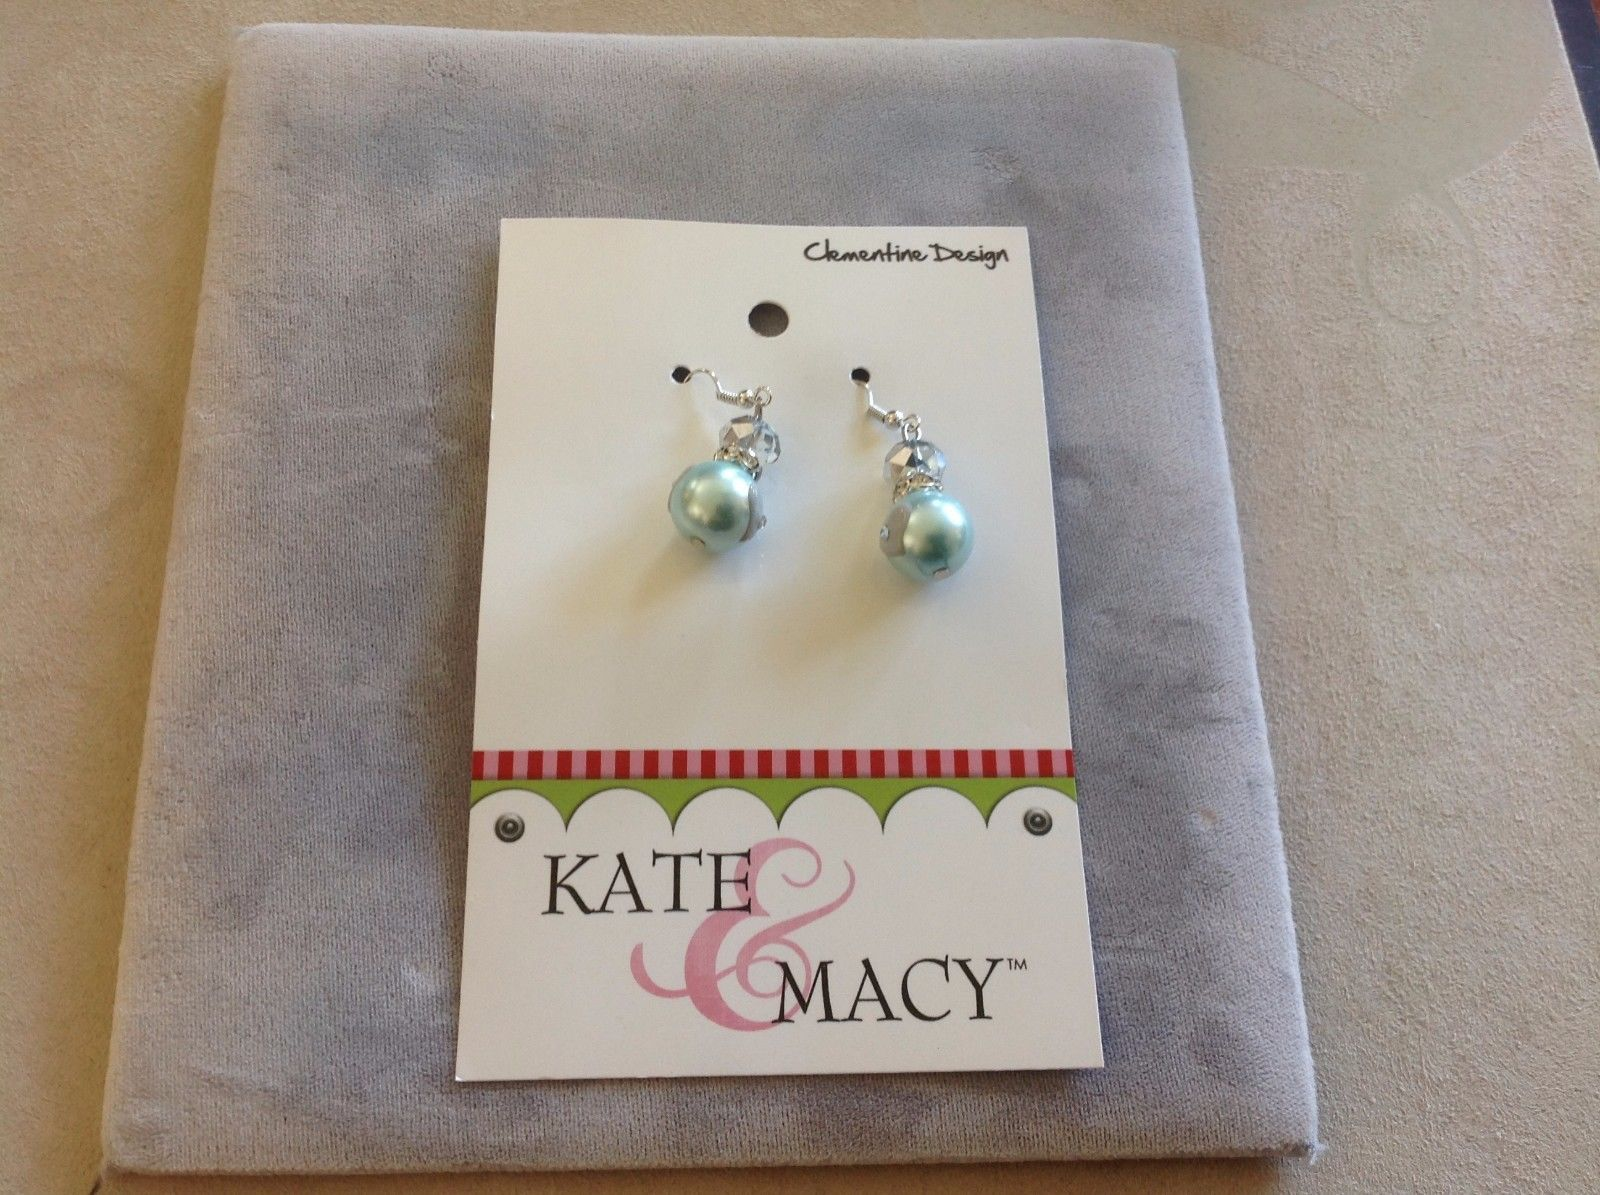 New Kate and Macy Clementine Design Earrings Baby Blue Dazzle Gems Hearts